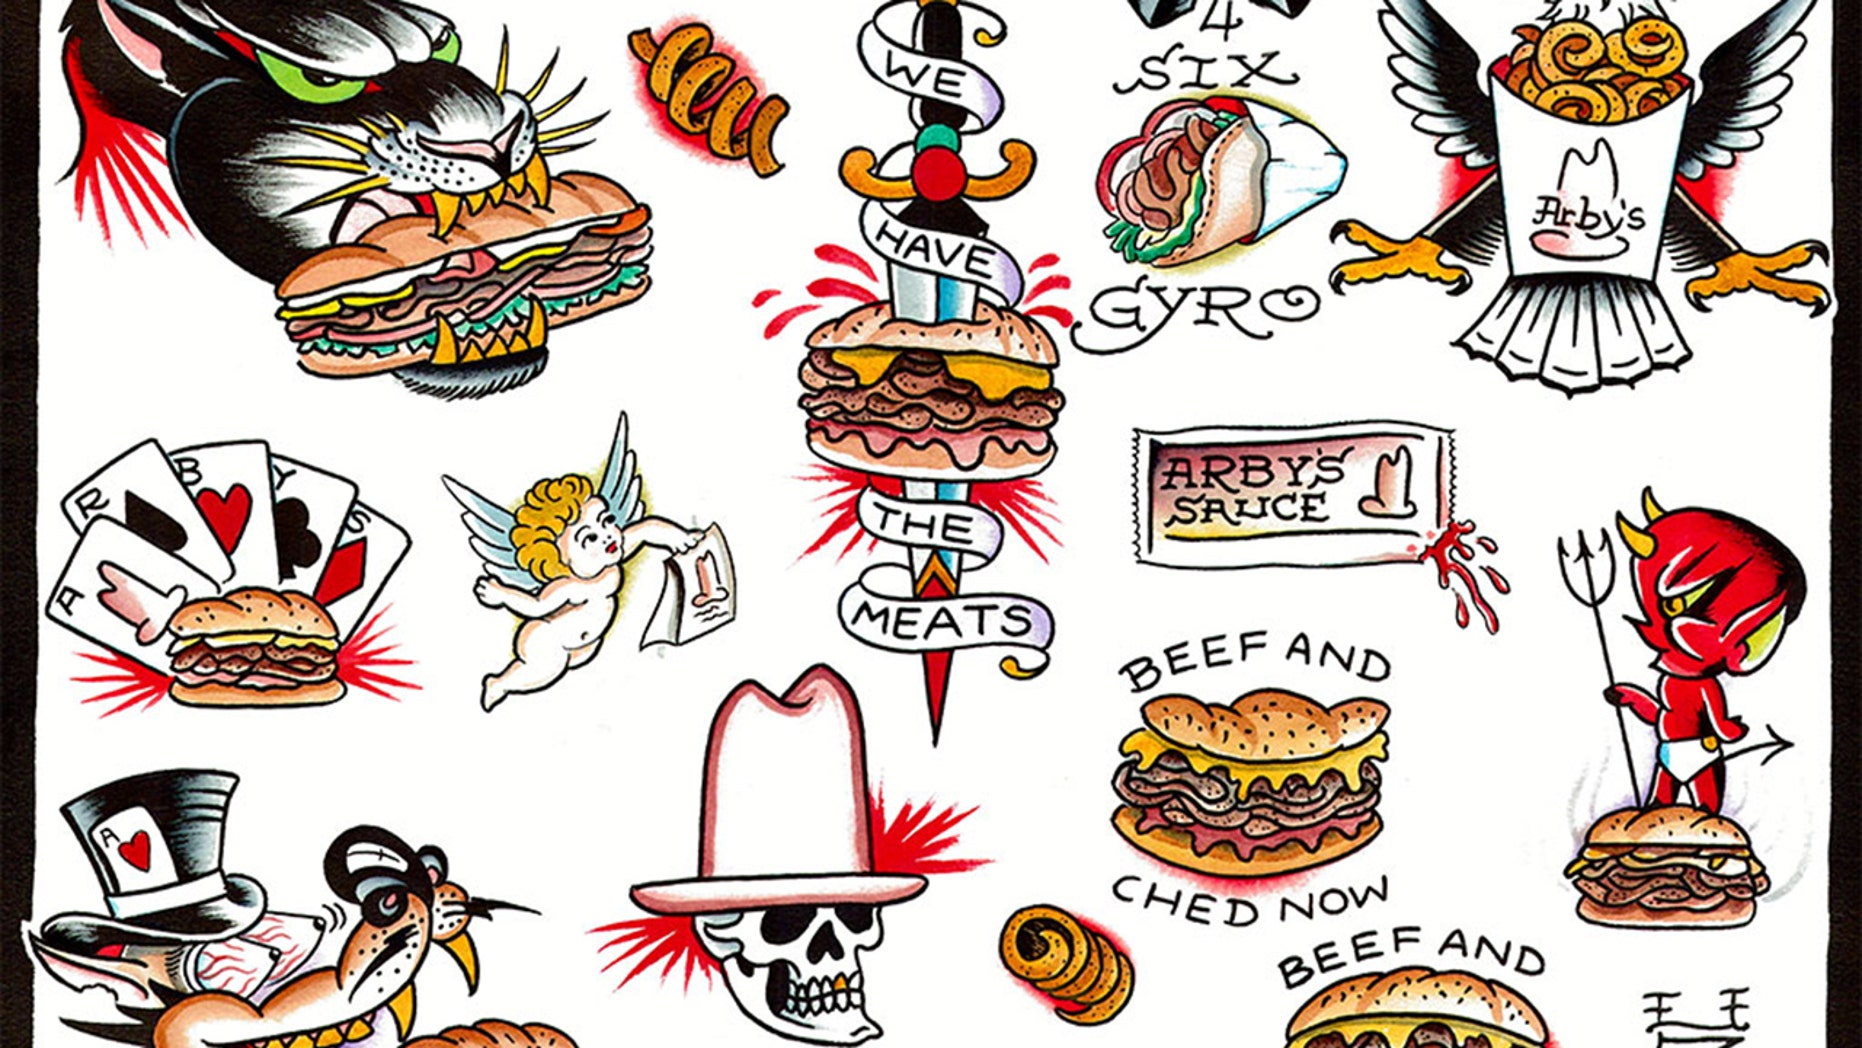 Arby's is paying for their most dedicated fans to get sandwich tattoos.